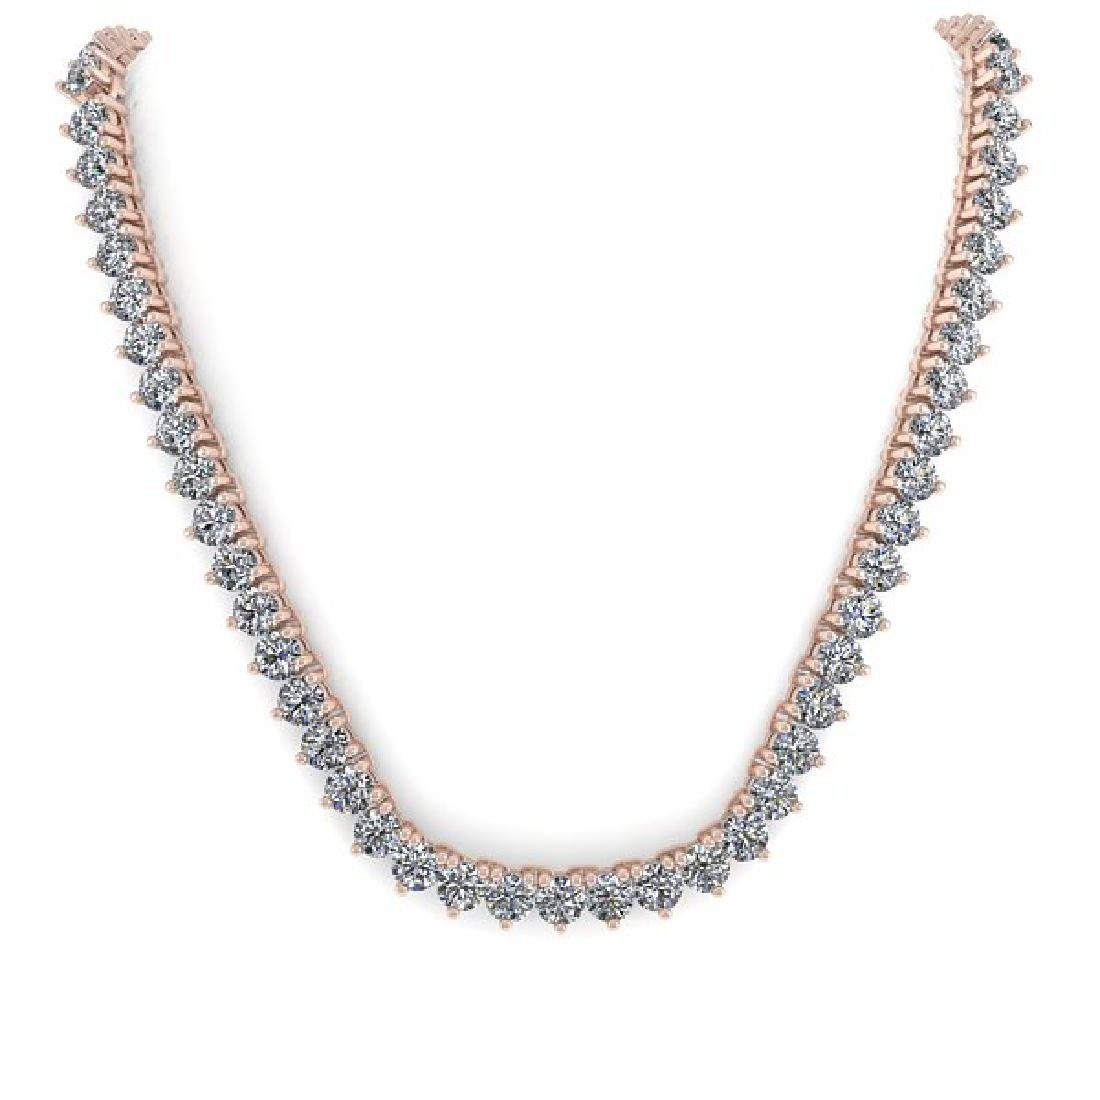 53 CTW Solitaire SI Diamond Necklace 14K Rose Gold - 3